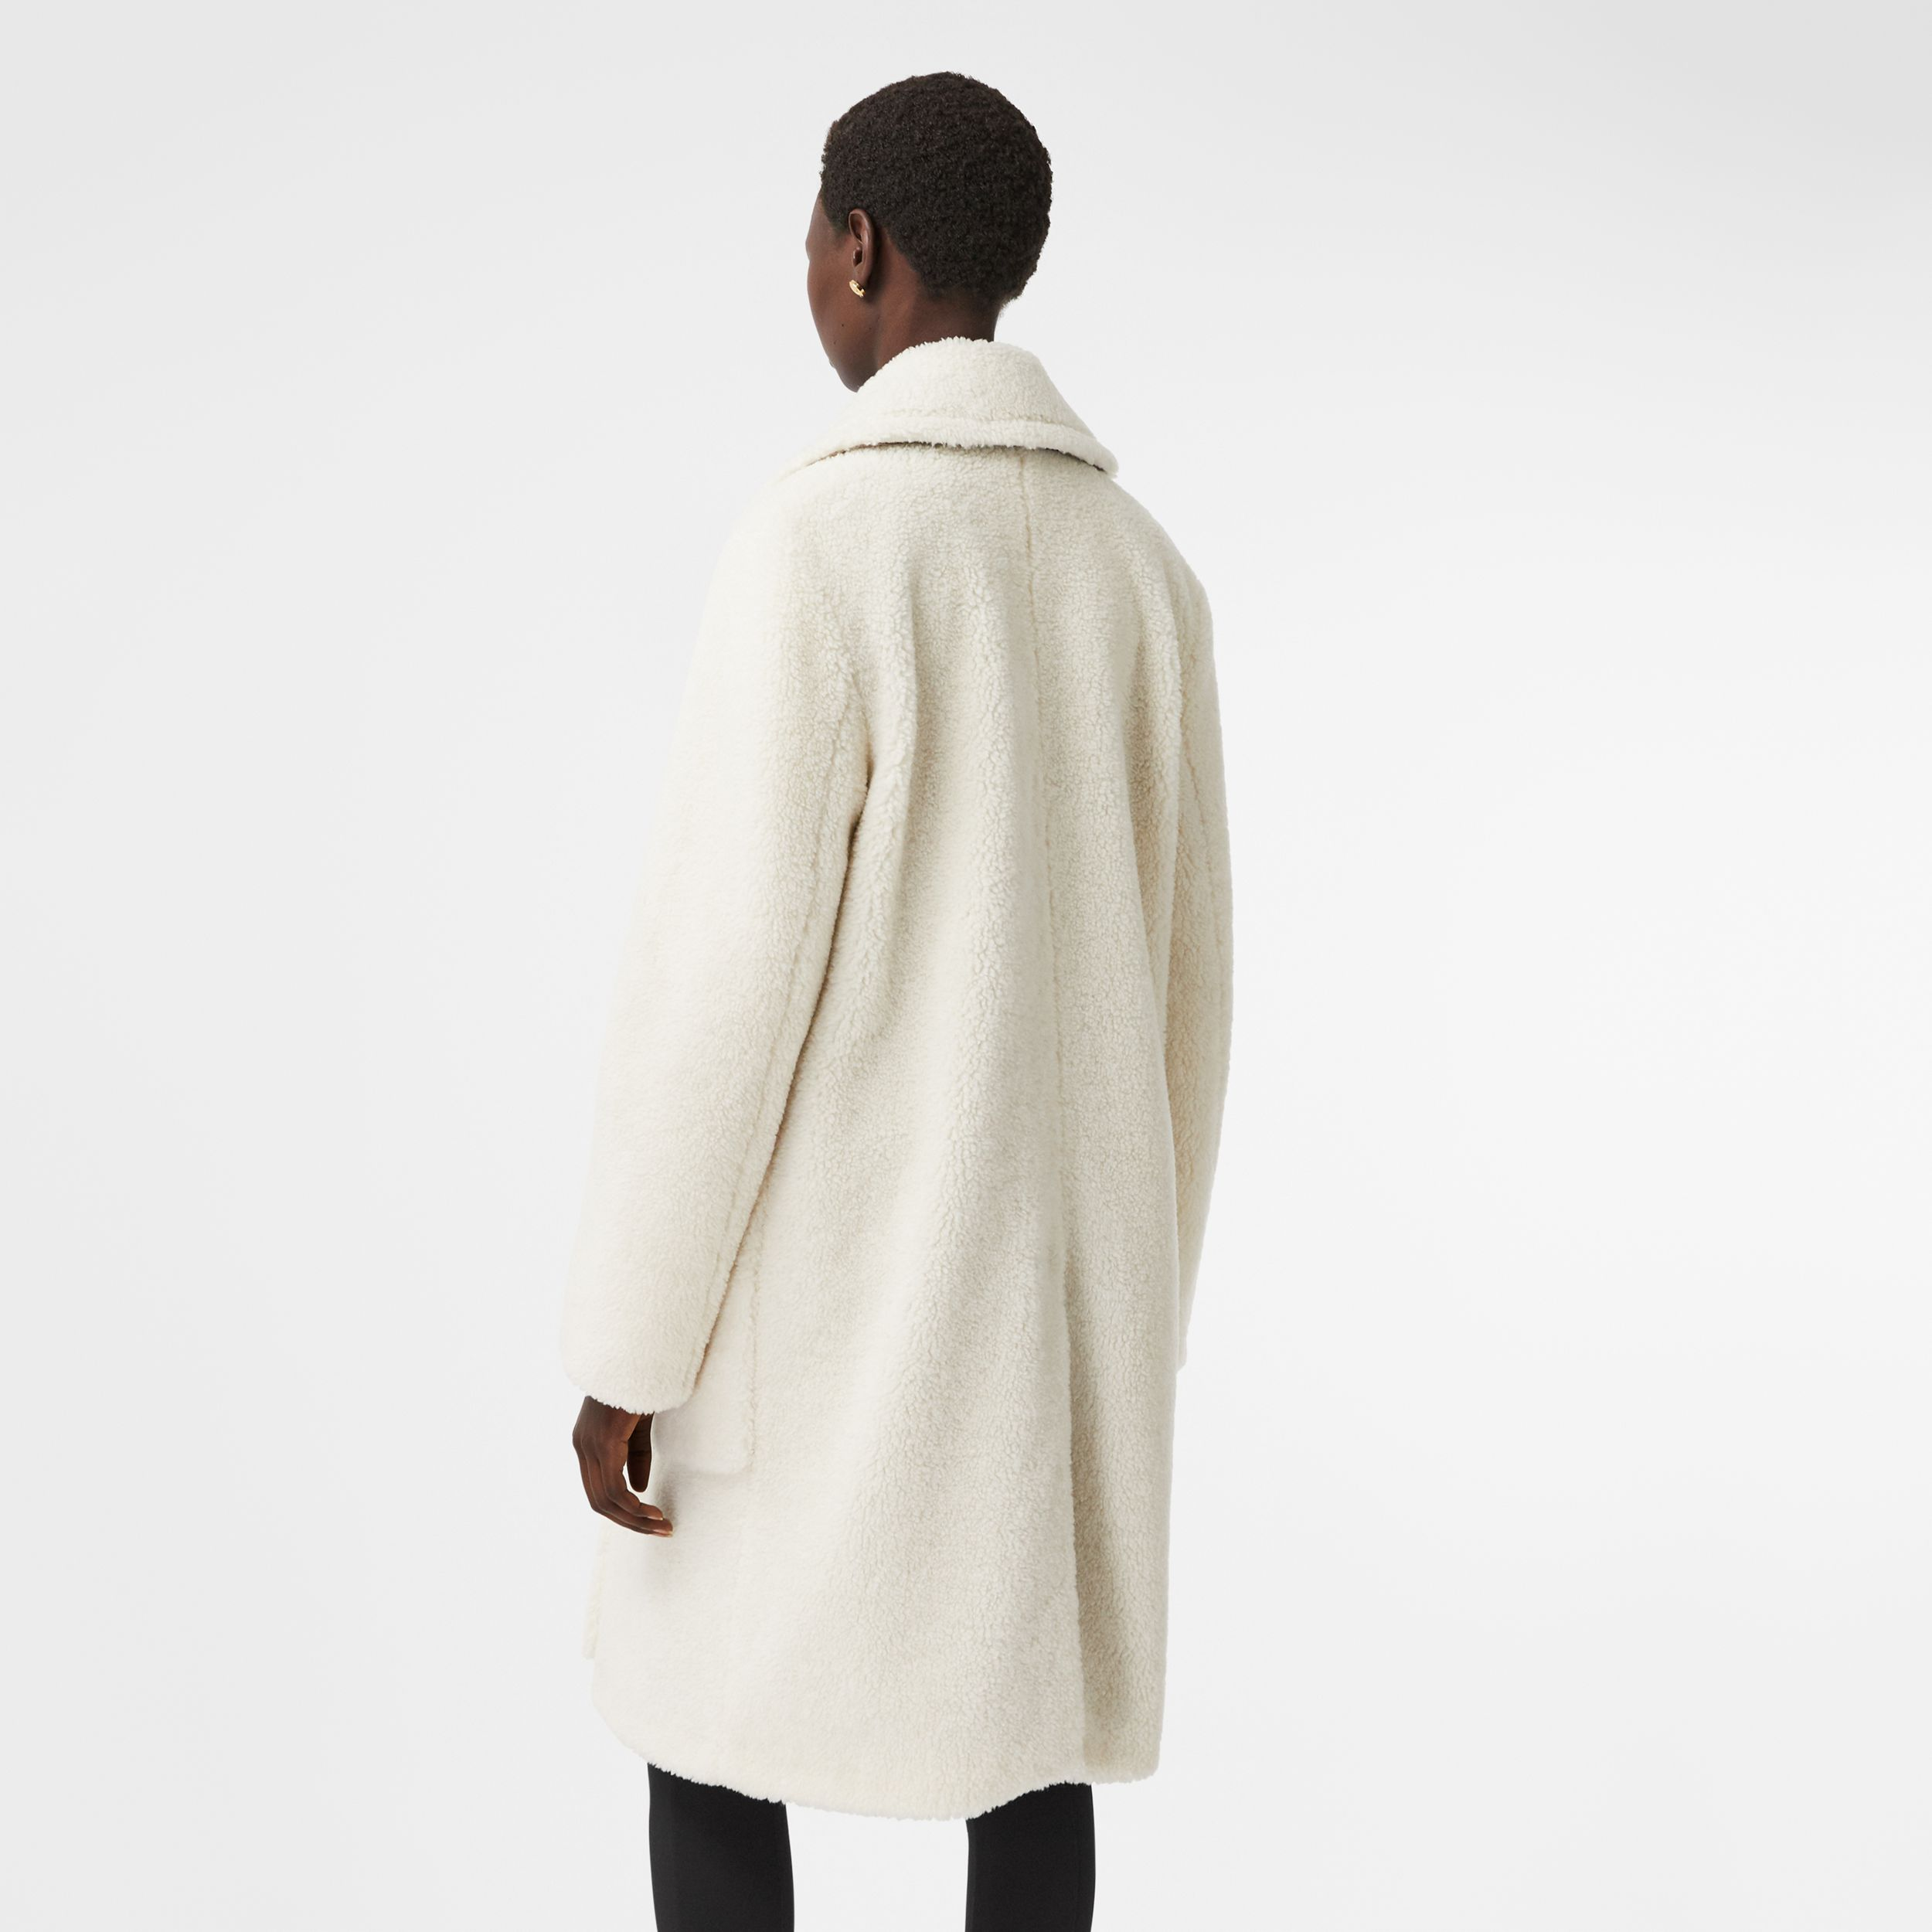 Technical Wool Fleece Double-breasted Coat in Ivory - Women | Burberry United States - 3